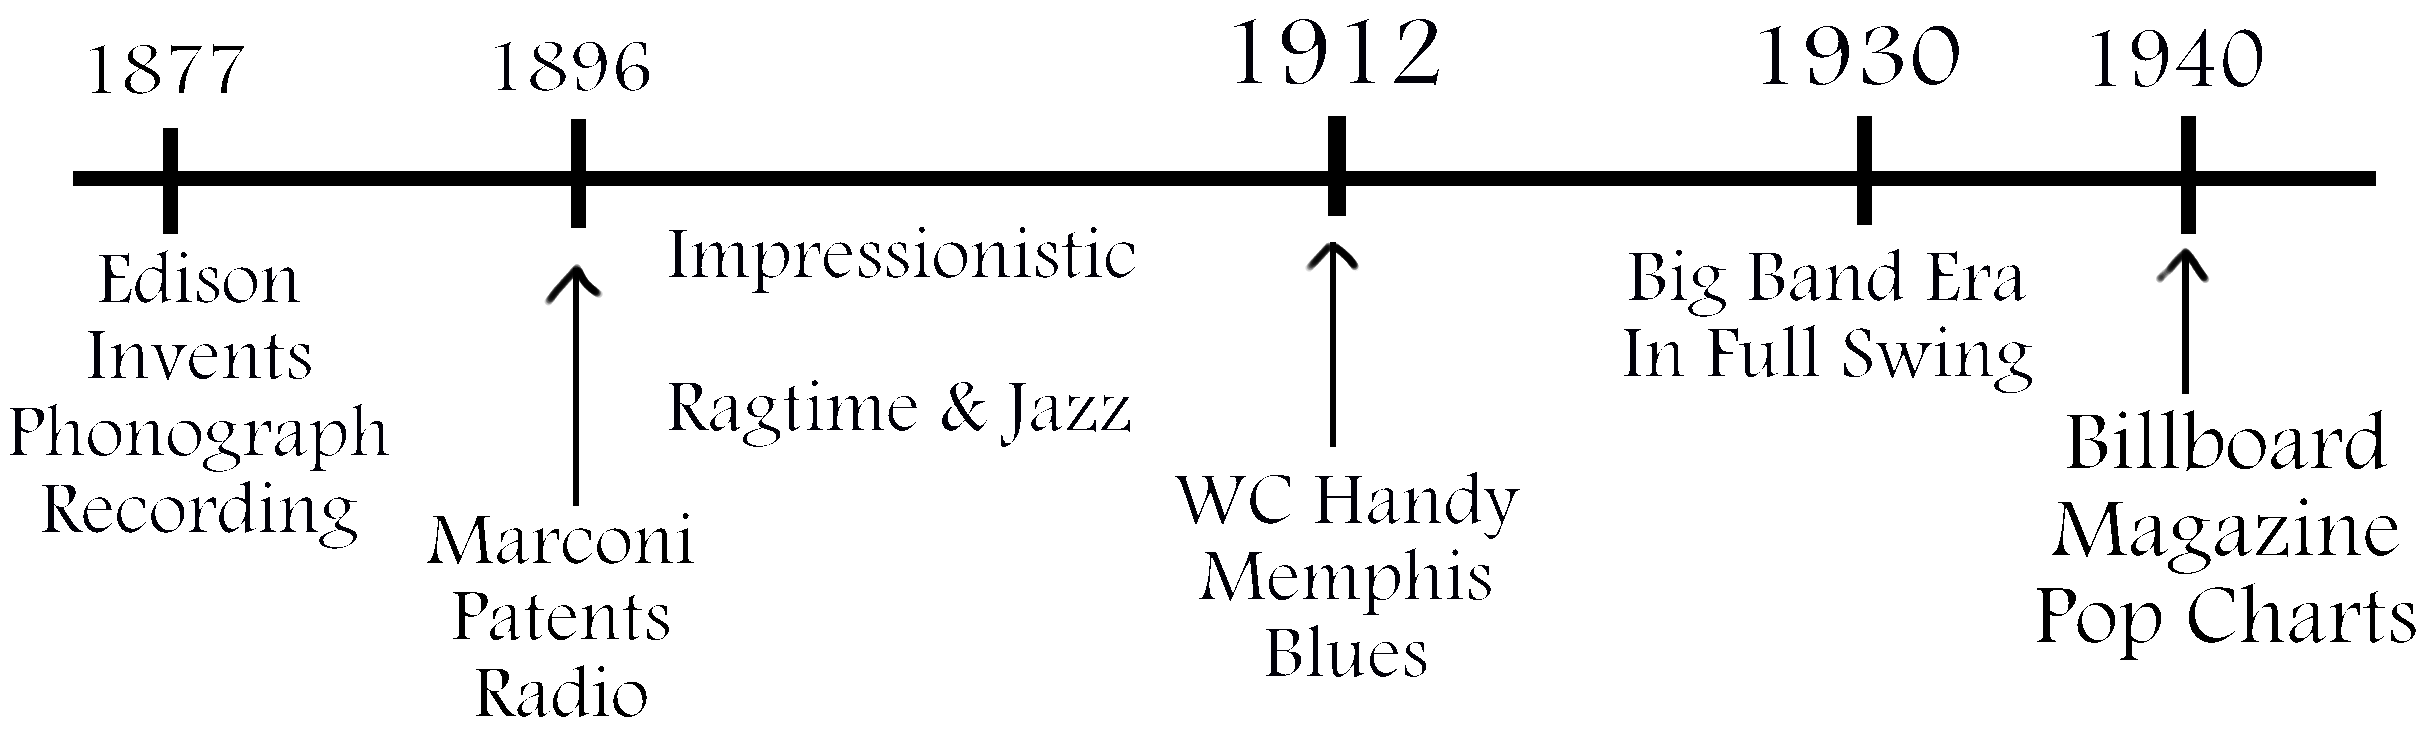 Timeline to 1940.png